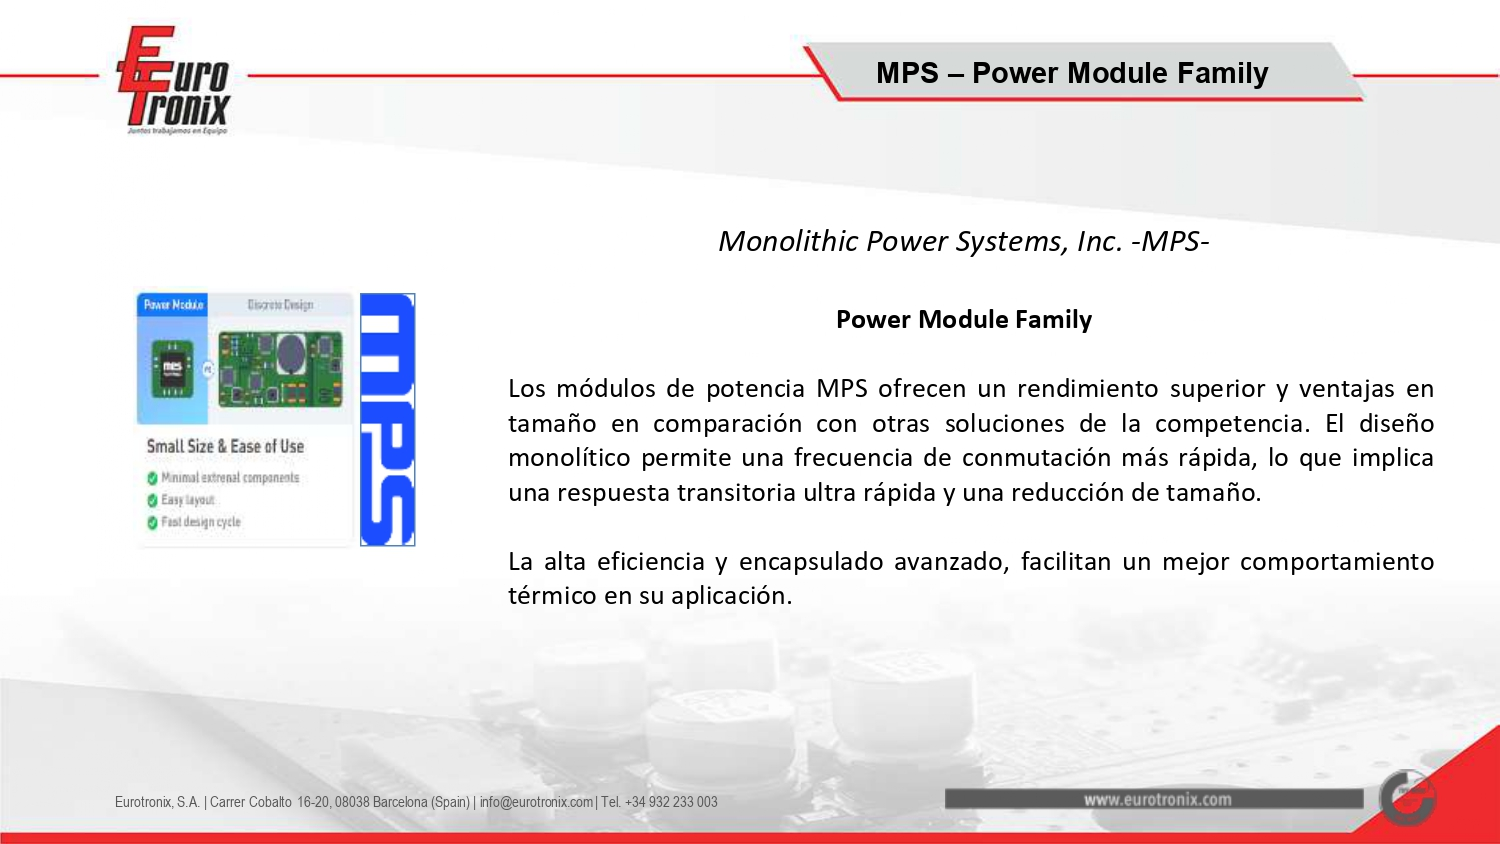 Monolithic Power Systems, Inc. -MPS- Power Module Family